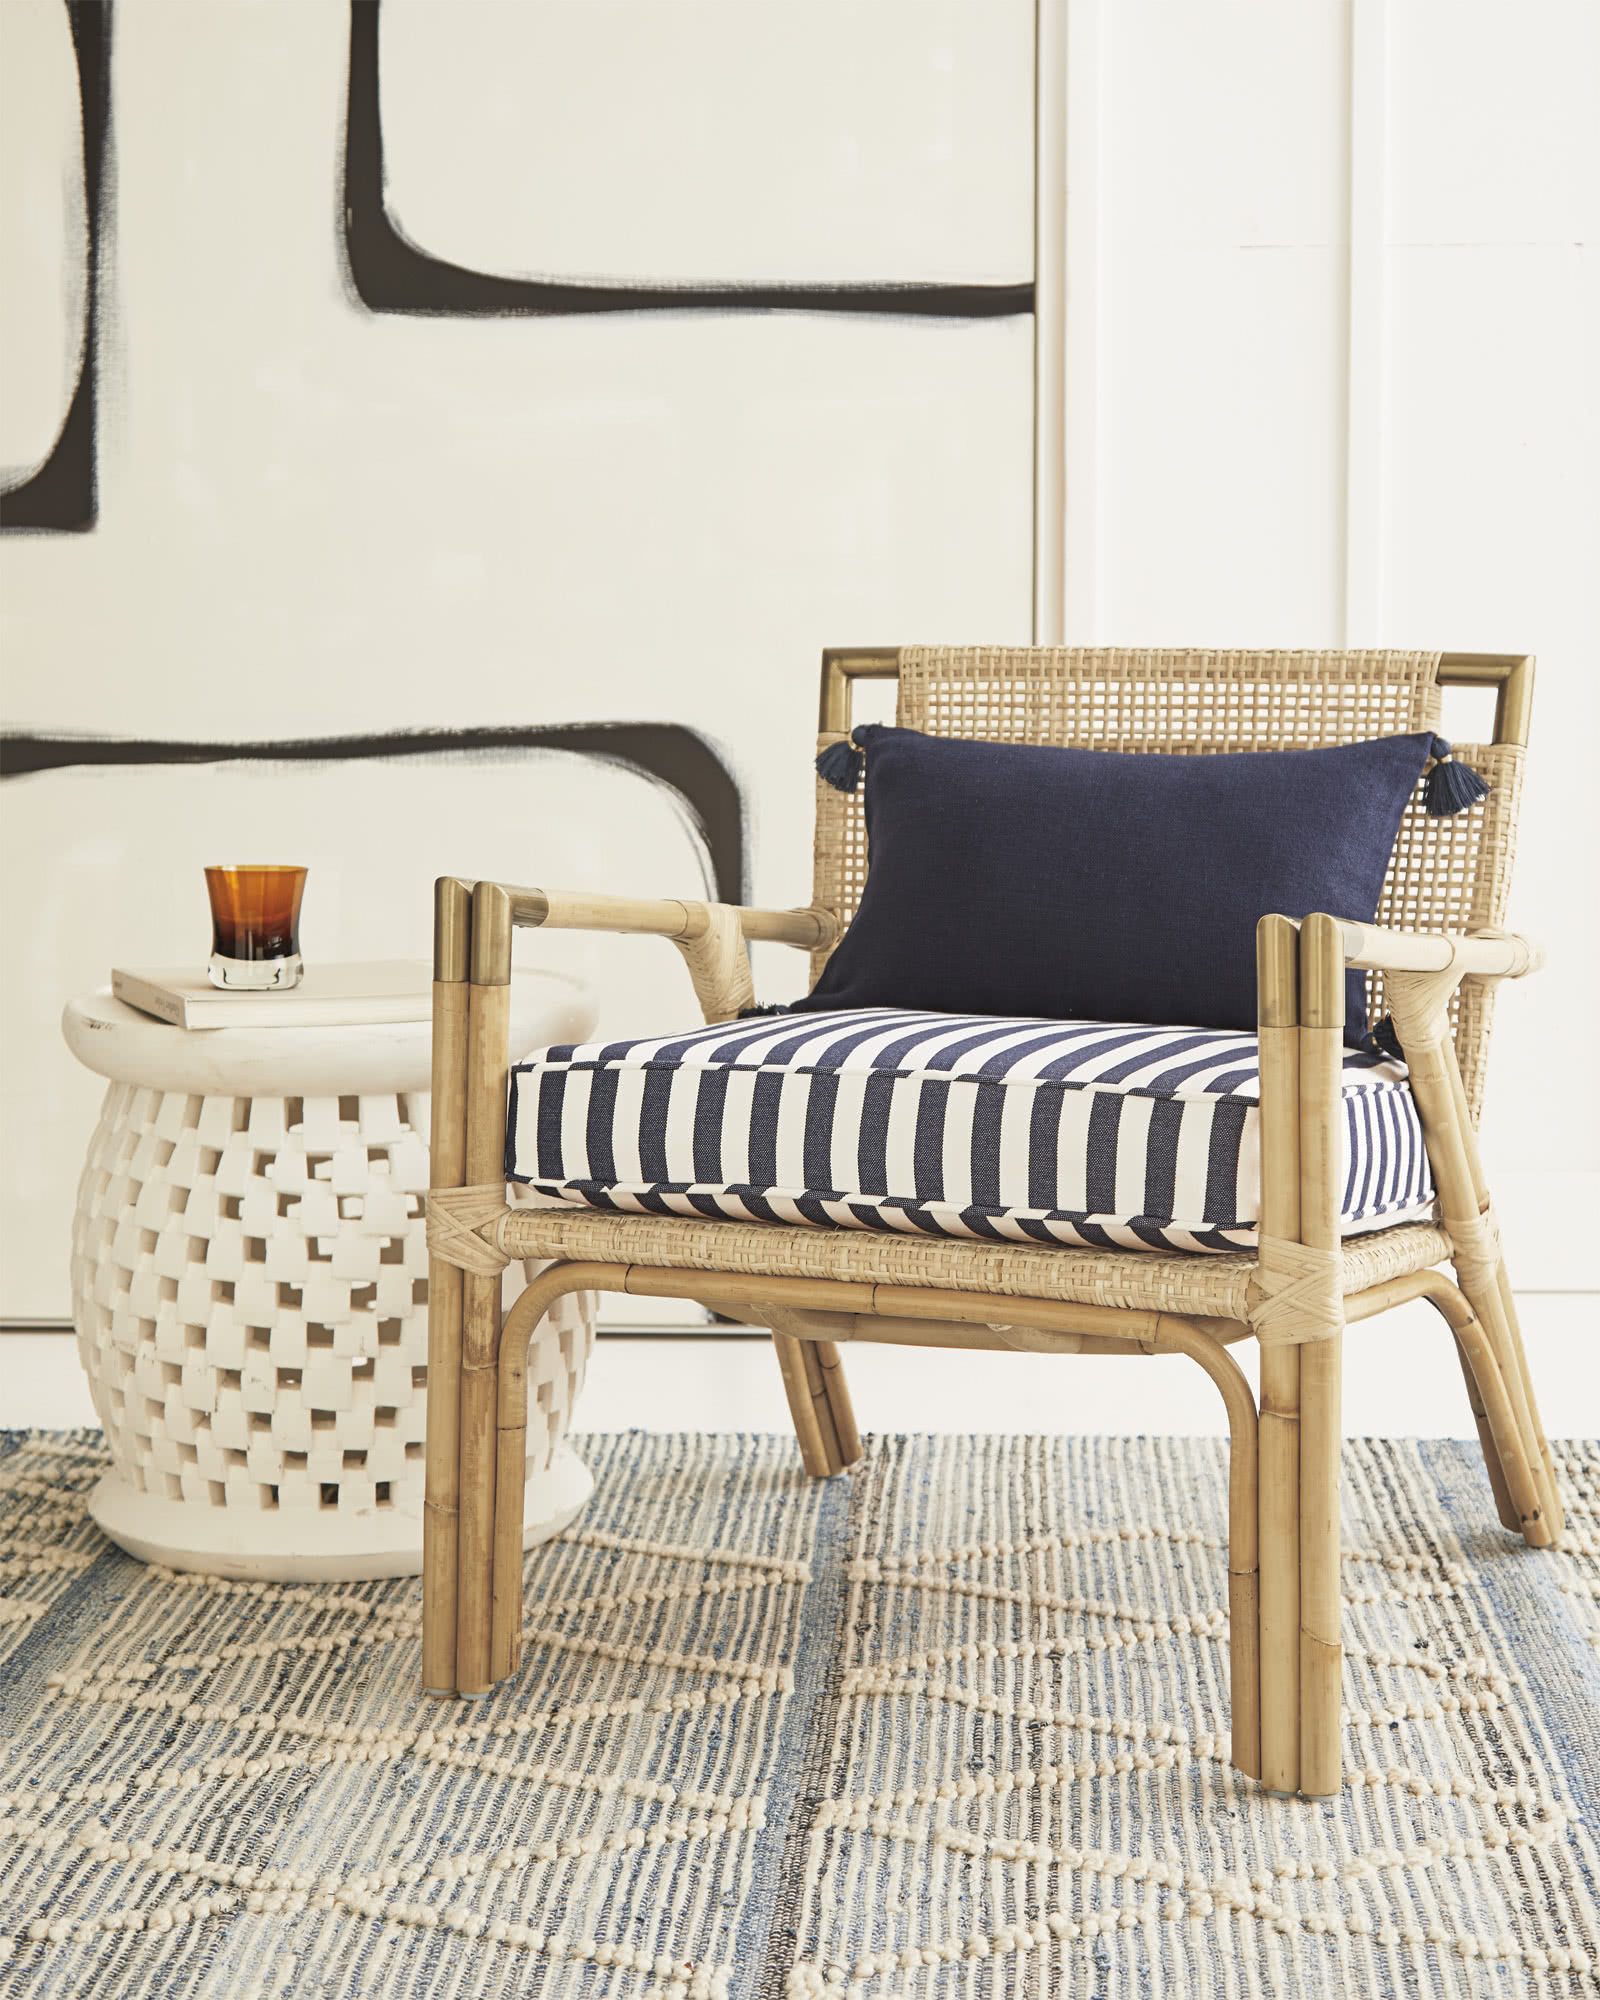 Mattituck Armchair with Cushion